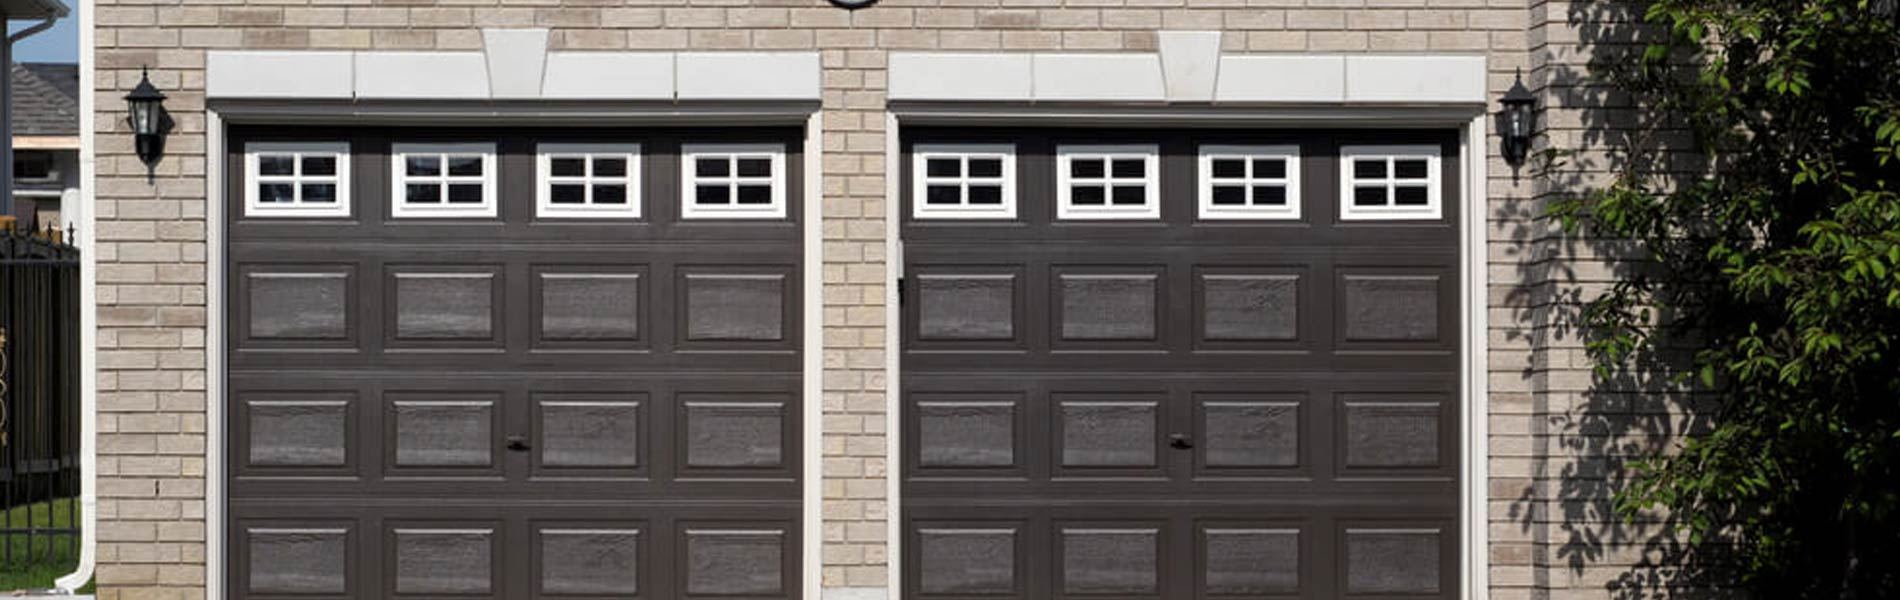 Expert Garage Doors Repairs Mesa, AZ 888-698-2905